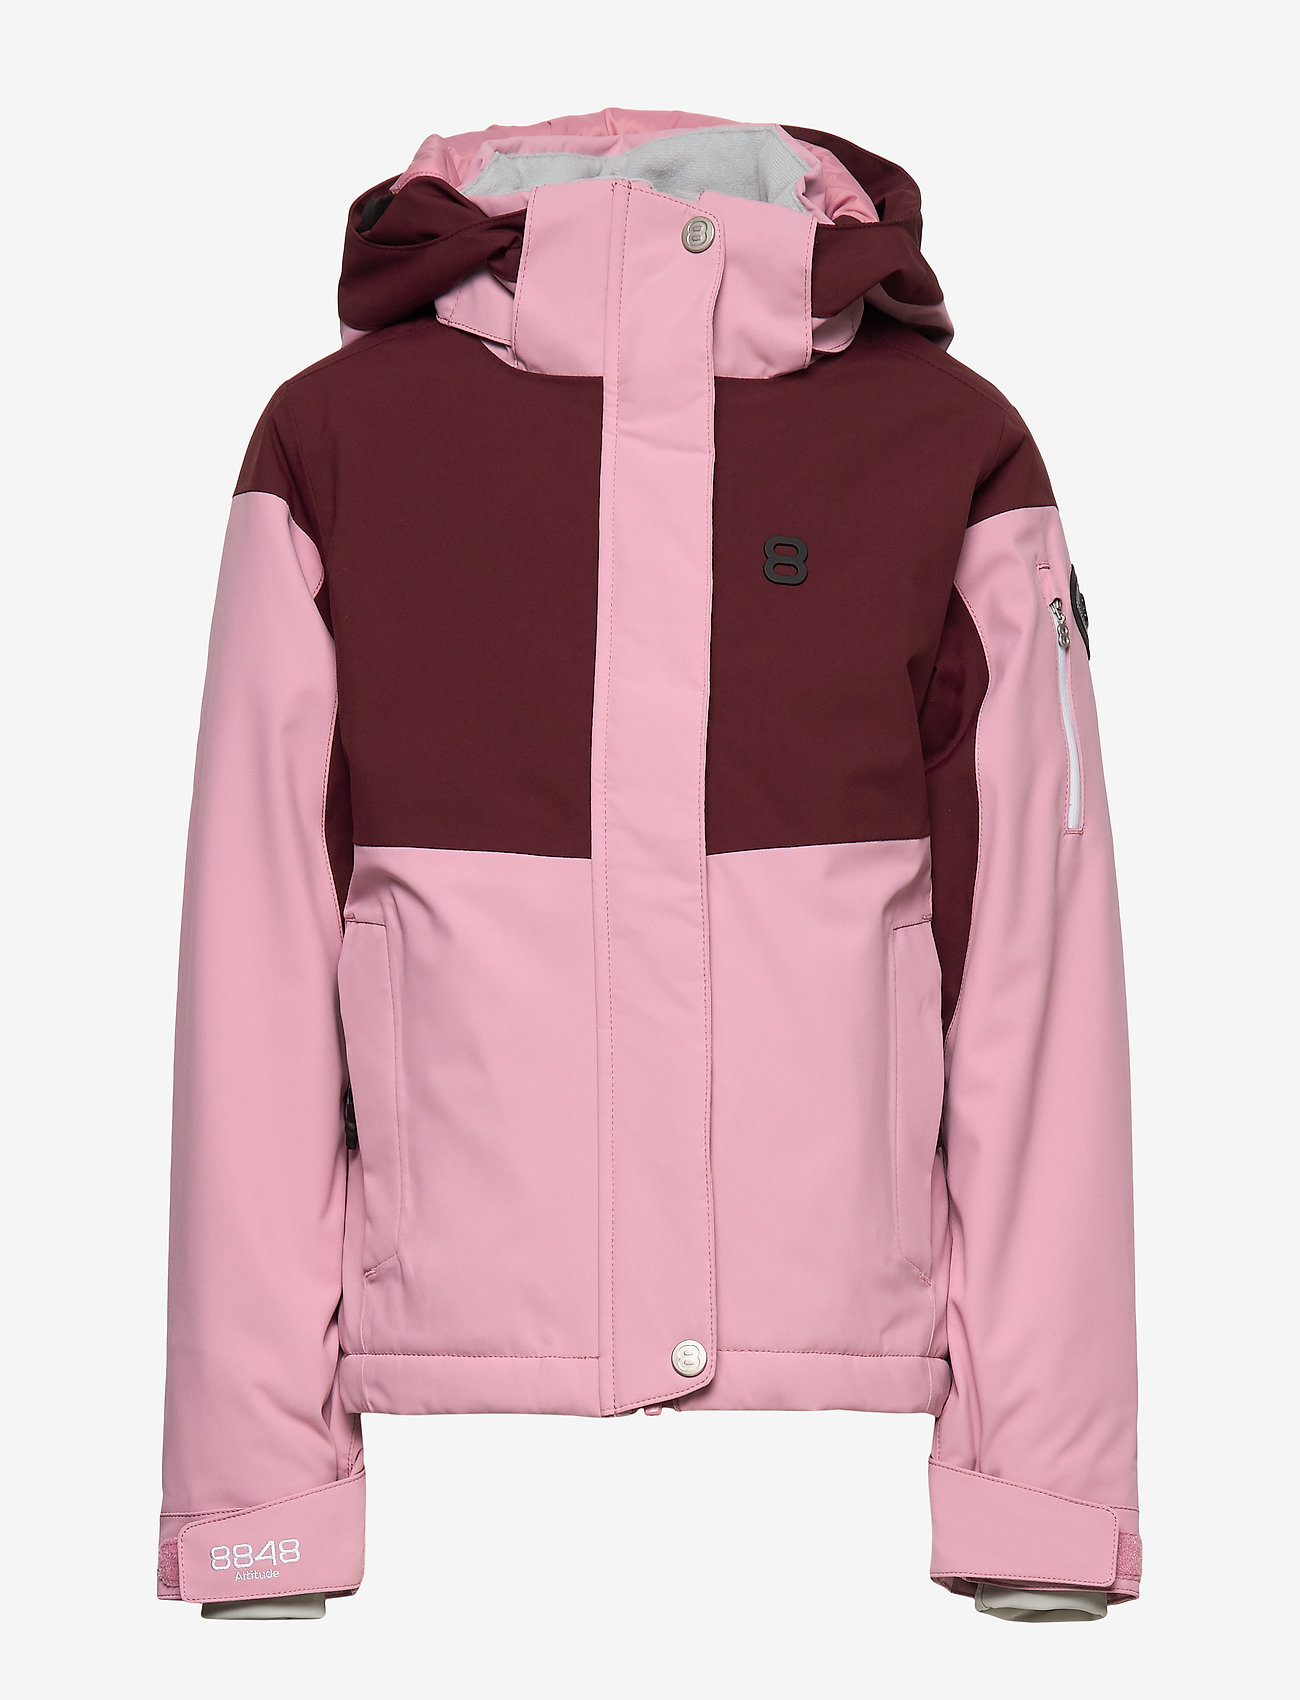 8848 Altitude - Florina JR Jacket - kurtka zimowa - rose - 1